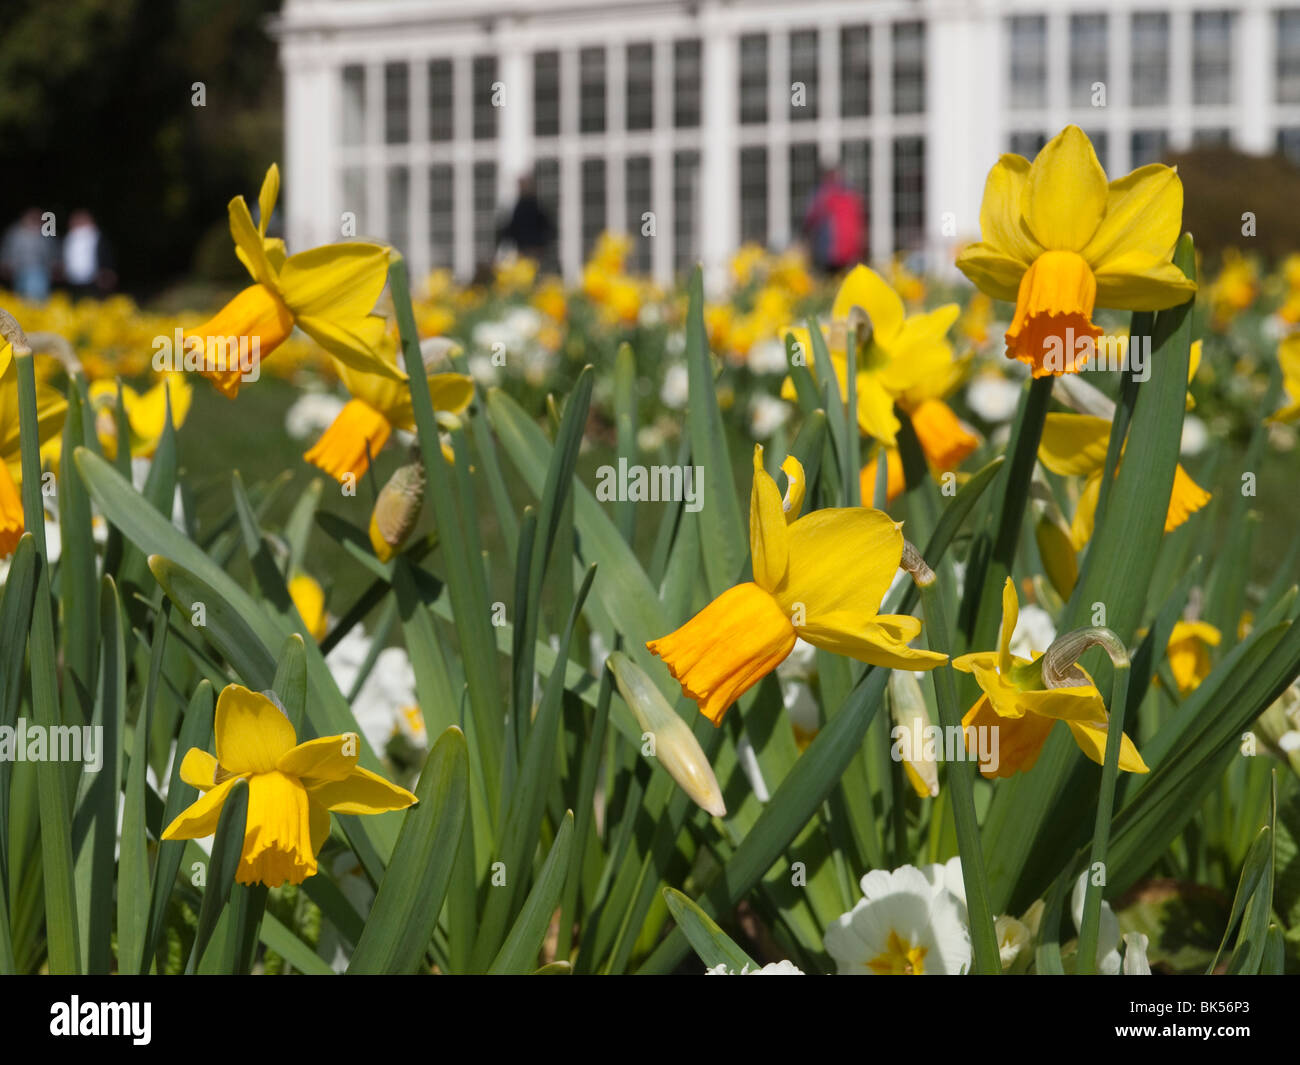 Spring Flowers And Daffodils In The Formal Gardens At Wollaton Hall